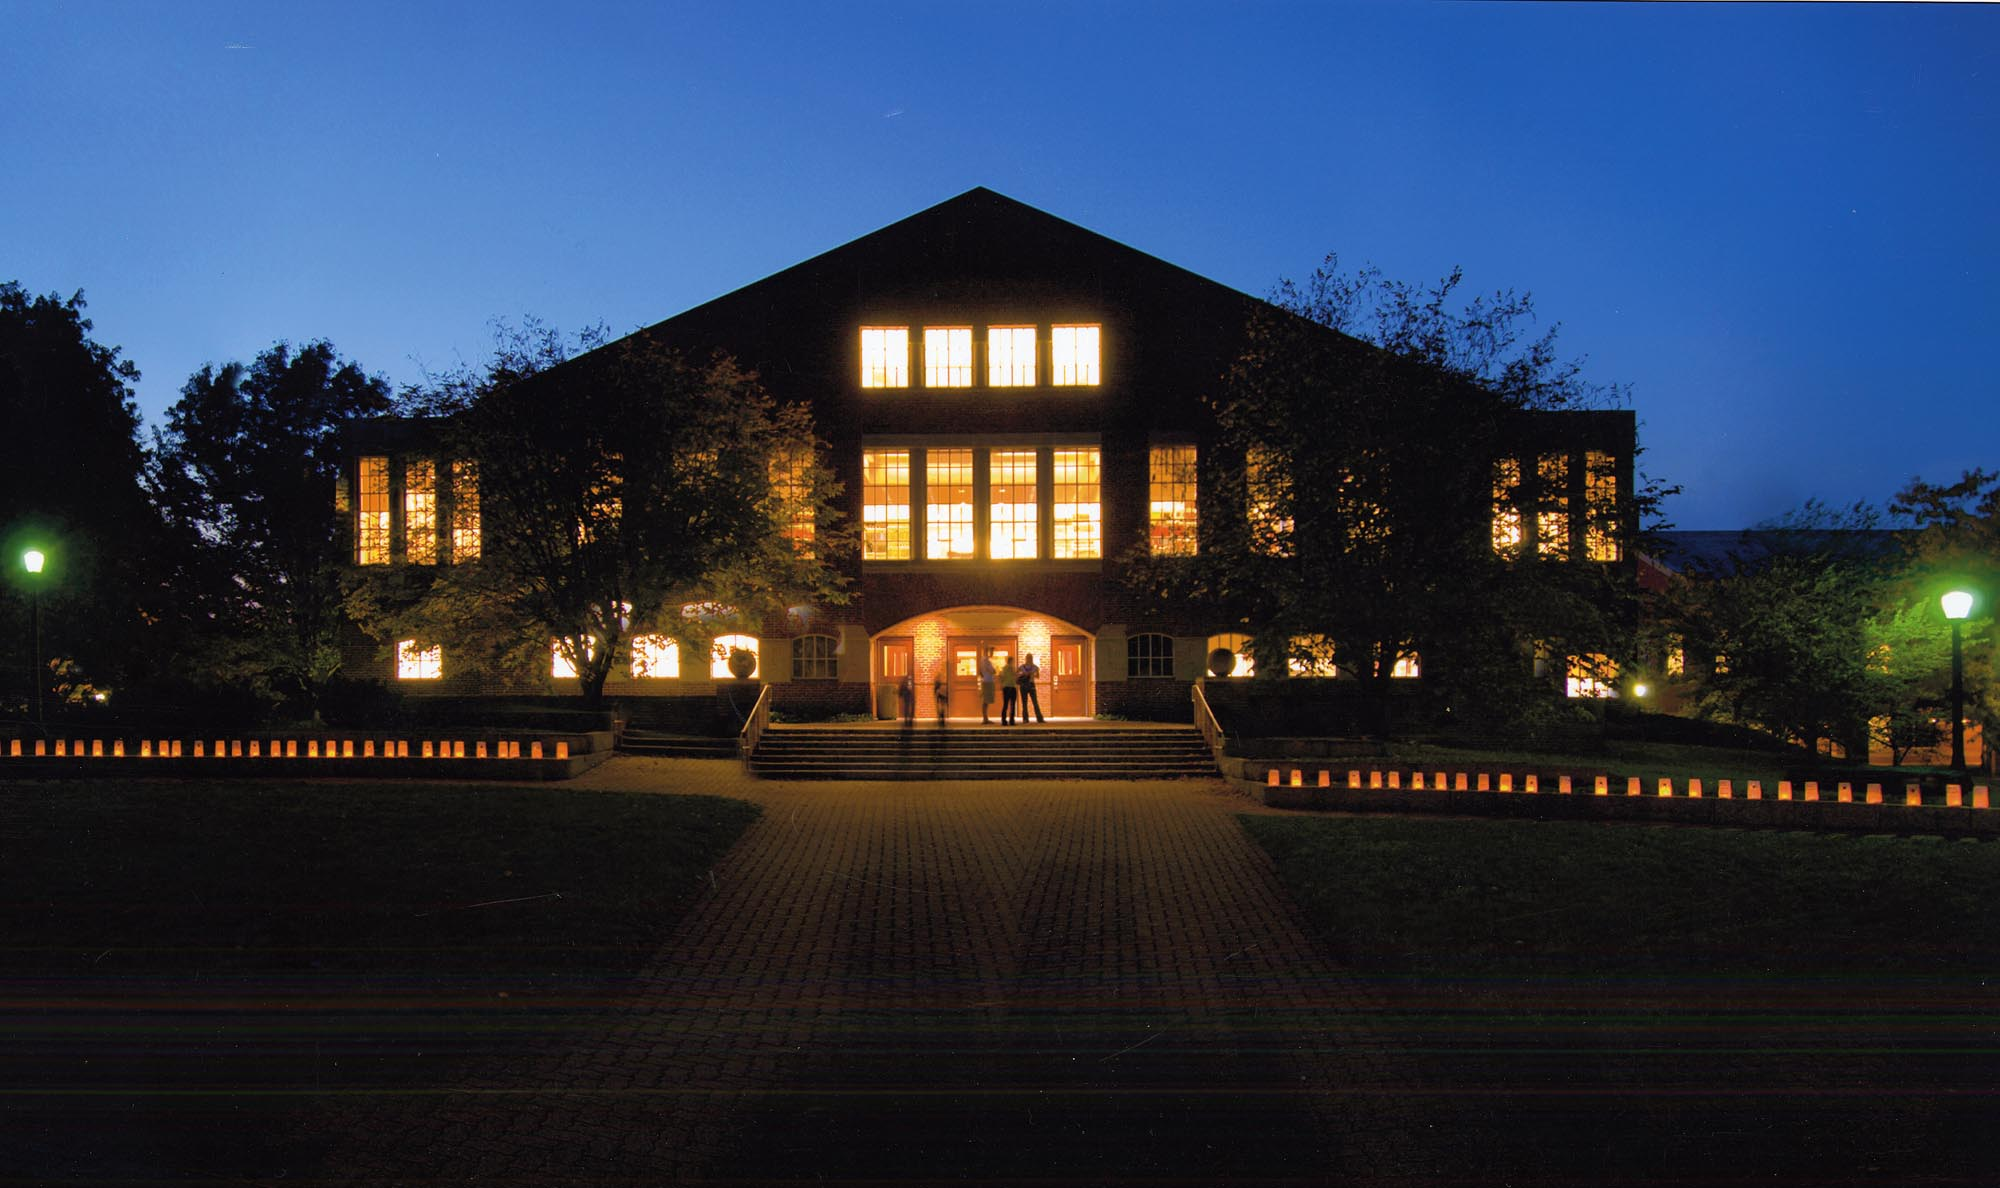 Hoover Library at night.